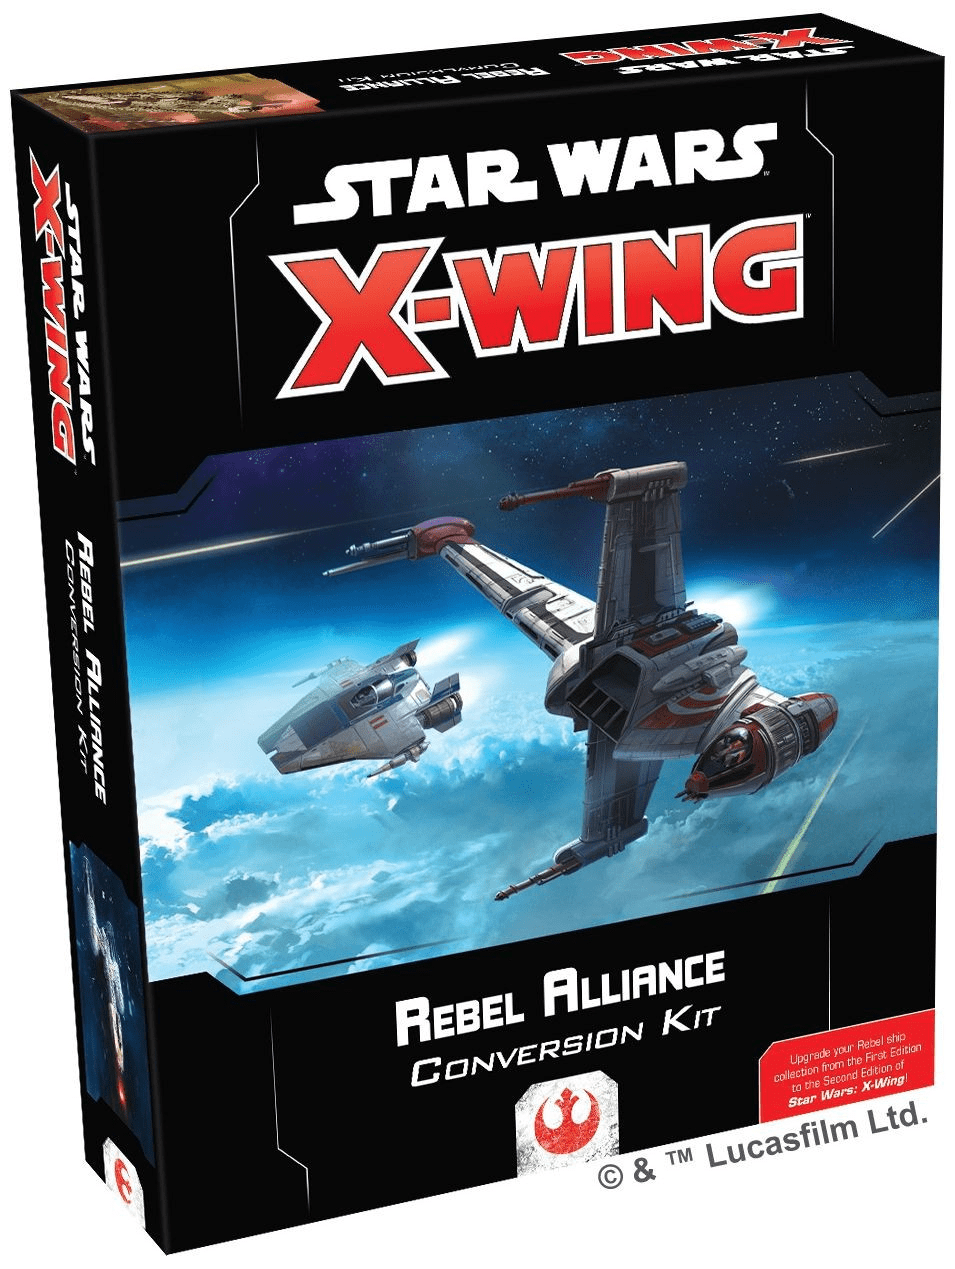 Rebel Alliance Conversion Kit (Star Wars X-Wing 2nd Edition)